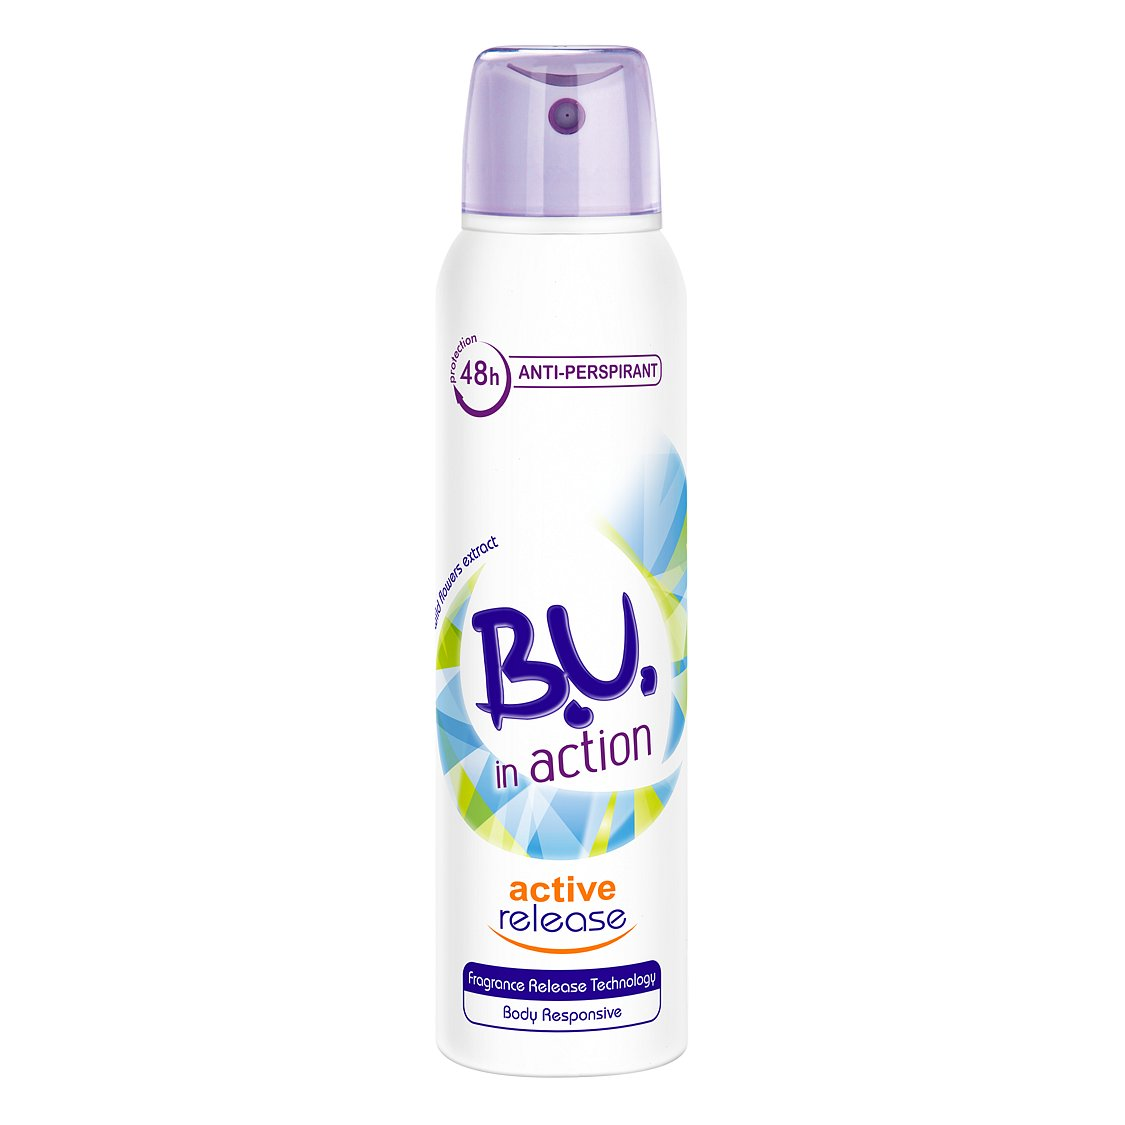 B.U. In Action Active Release antiperspirant sprej 150 ml